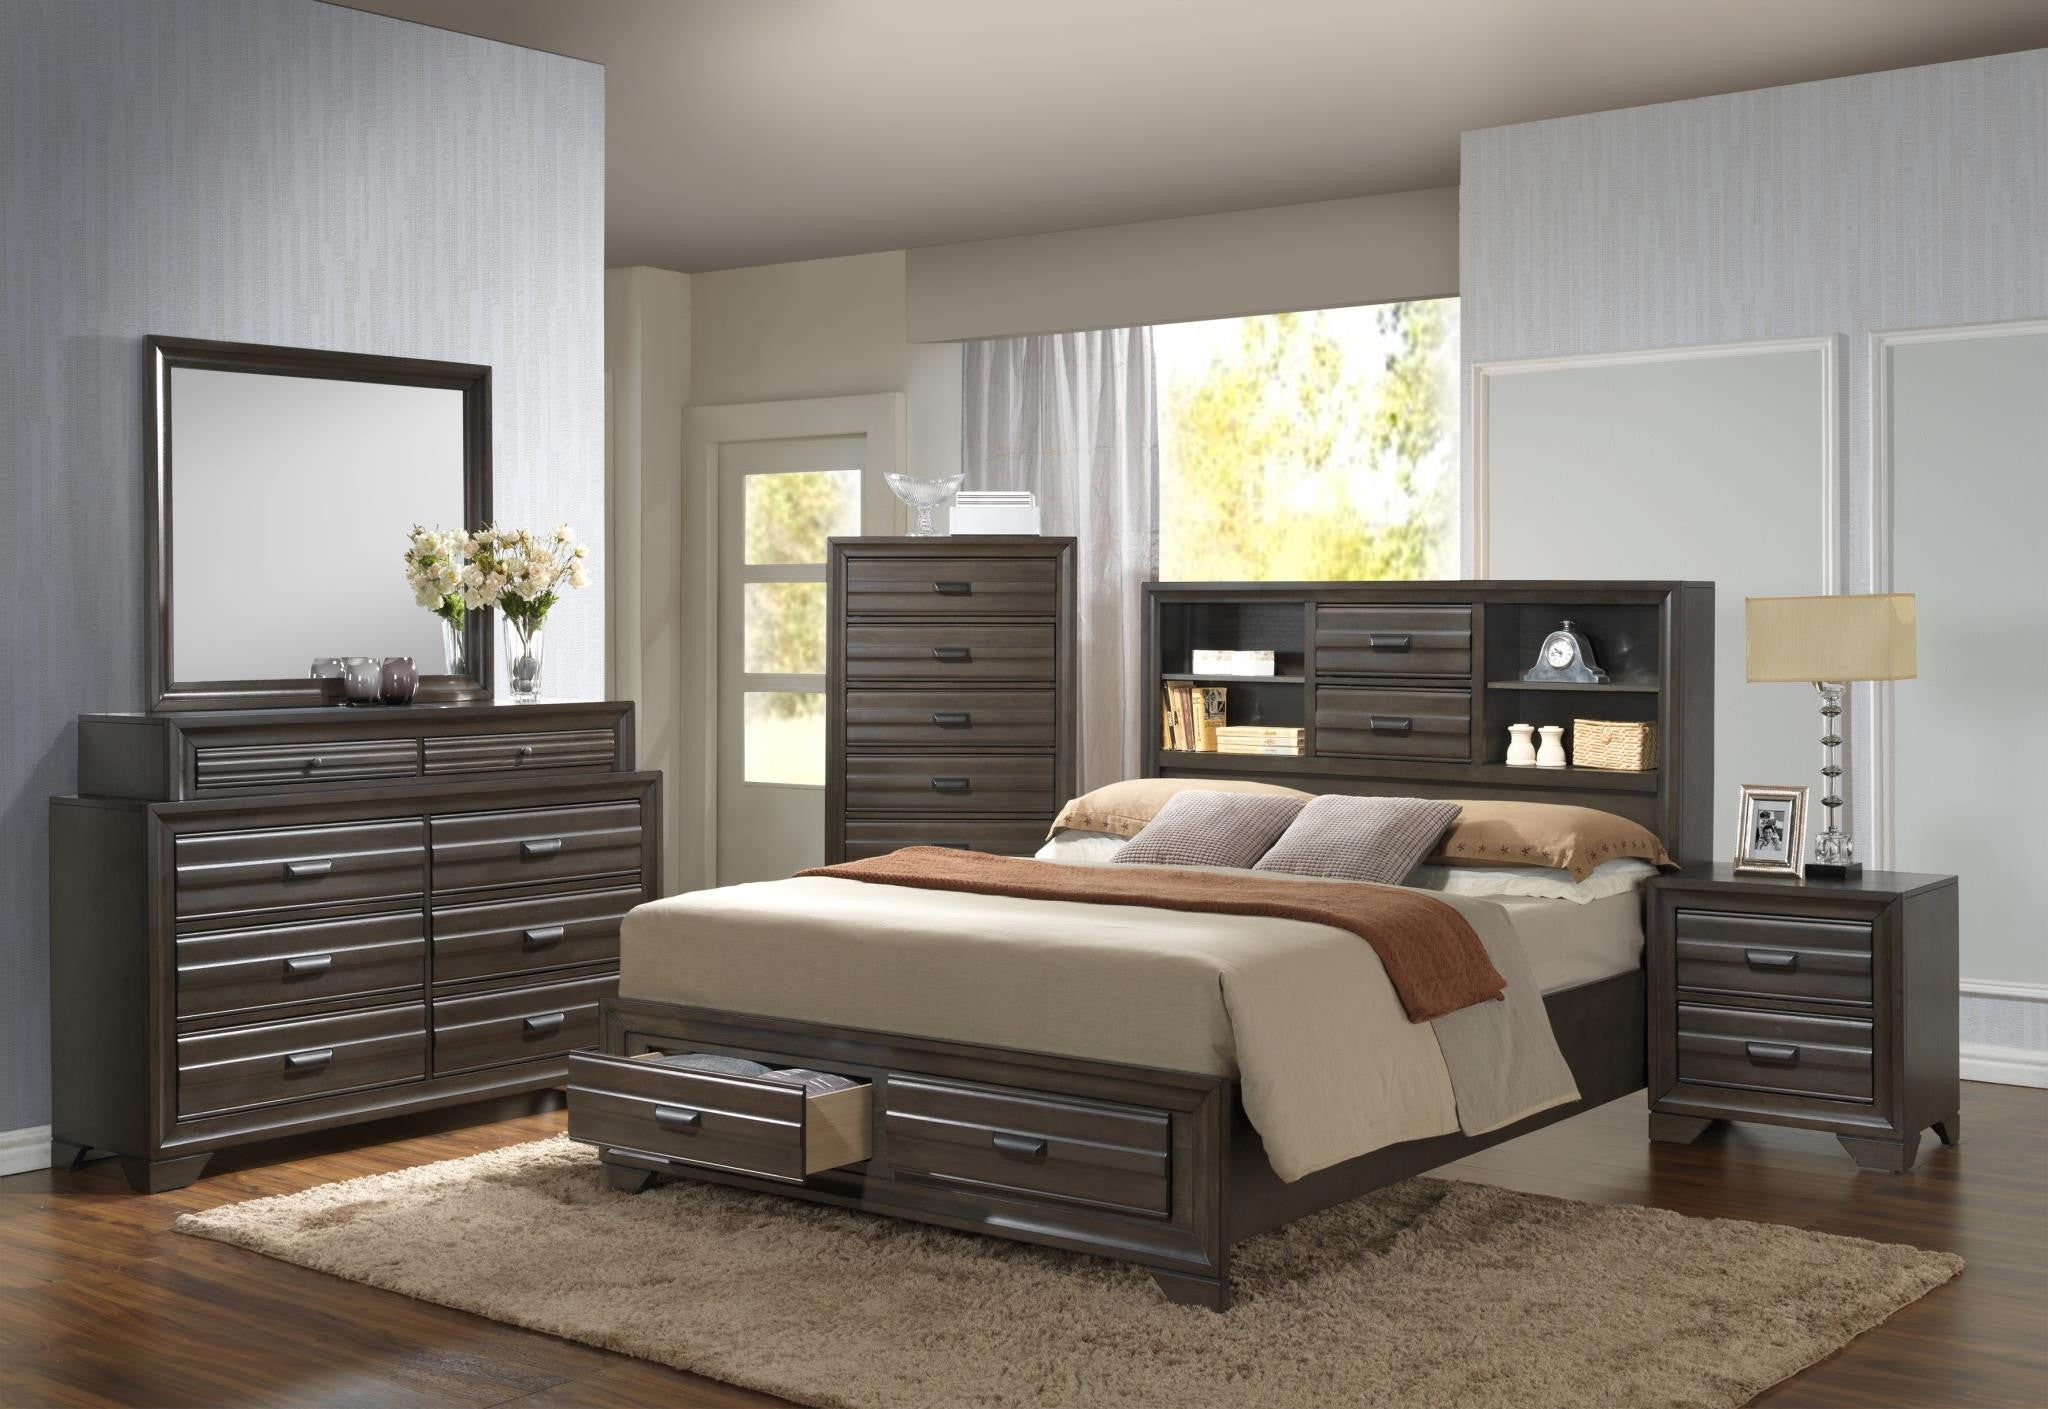 Eddison Bedroom Set